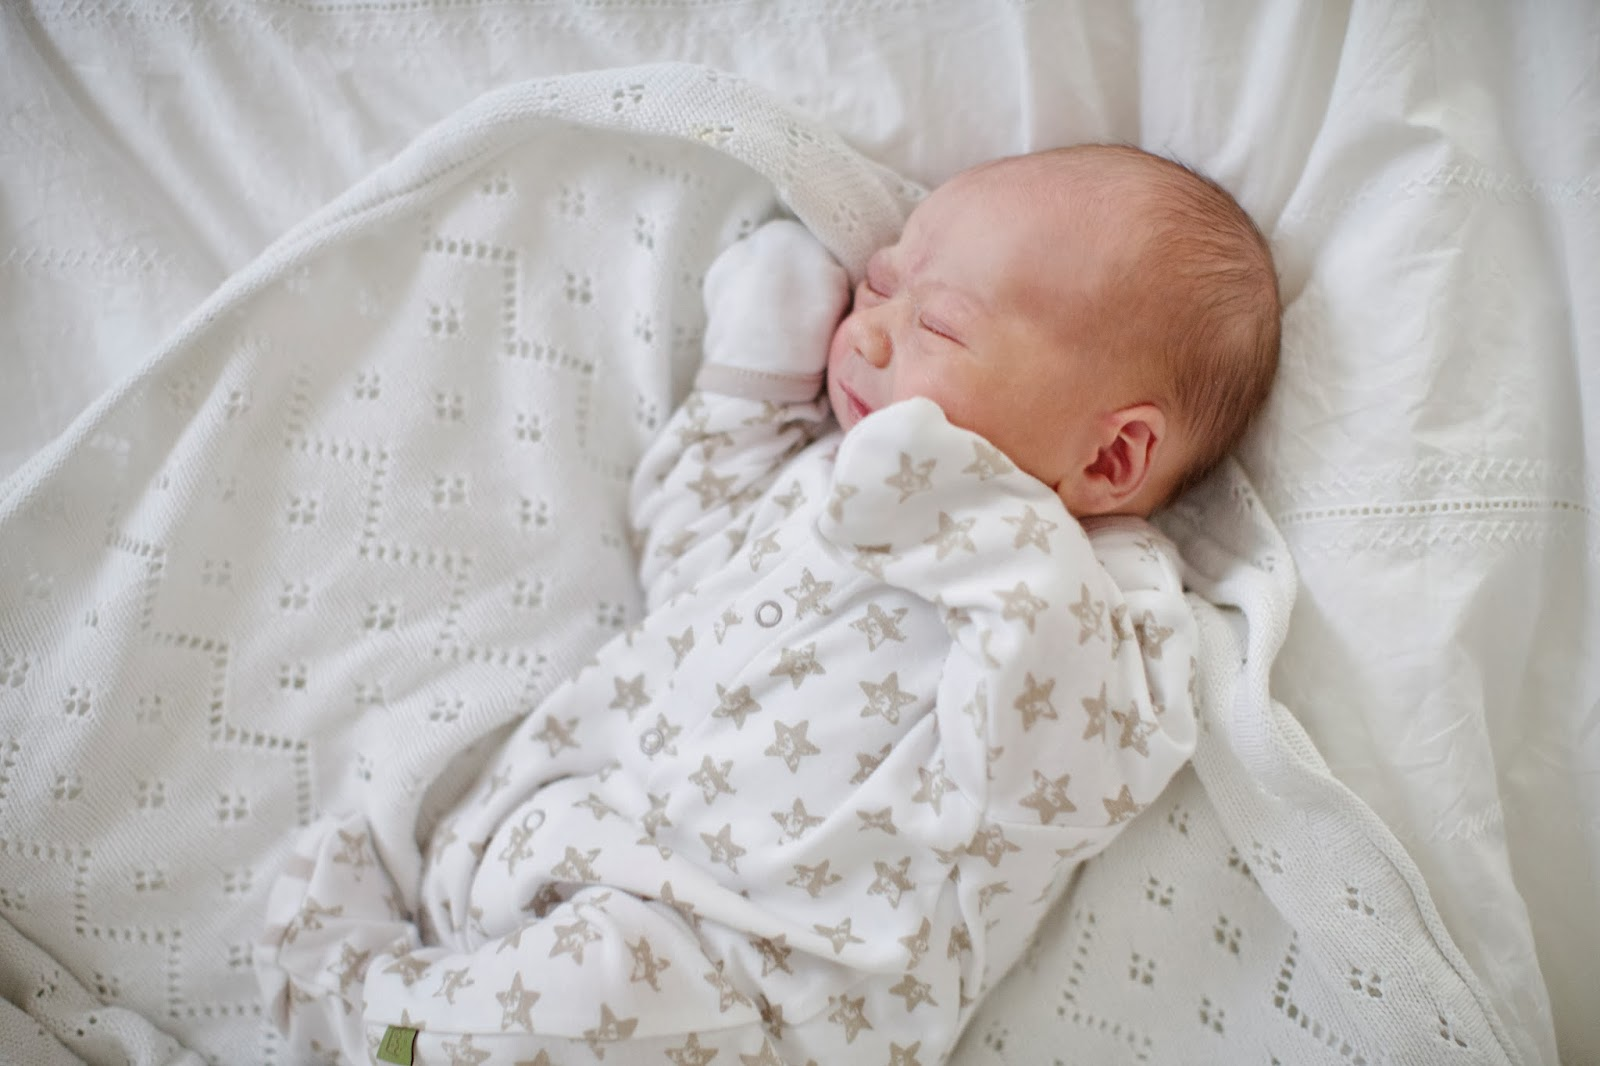 Baby Unisex Clothing At George, we have an adorable range of baby unisex clothing, from cosy bodysuits, bibs, to practical blankets in stylish designs to keep your little bundle of .